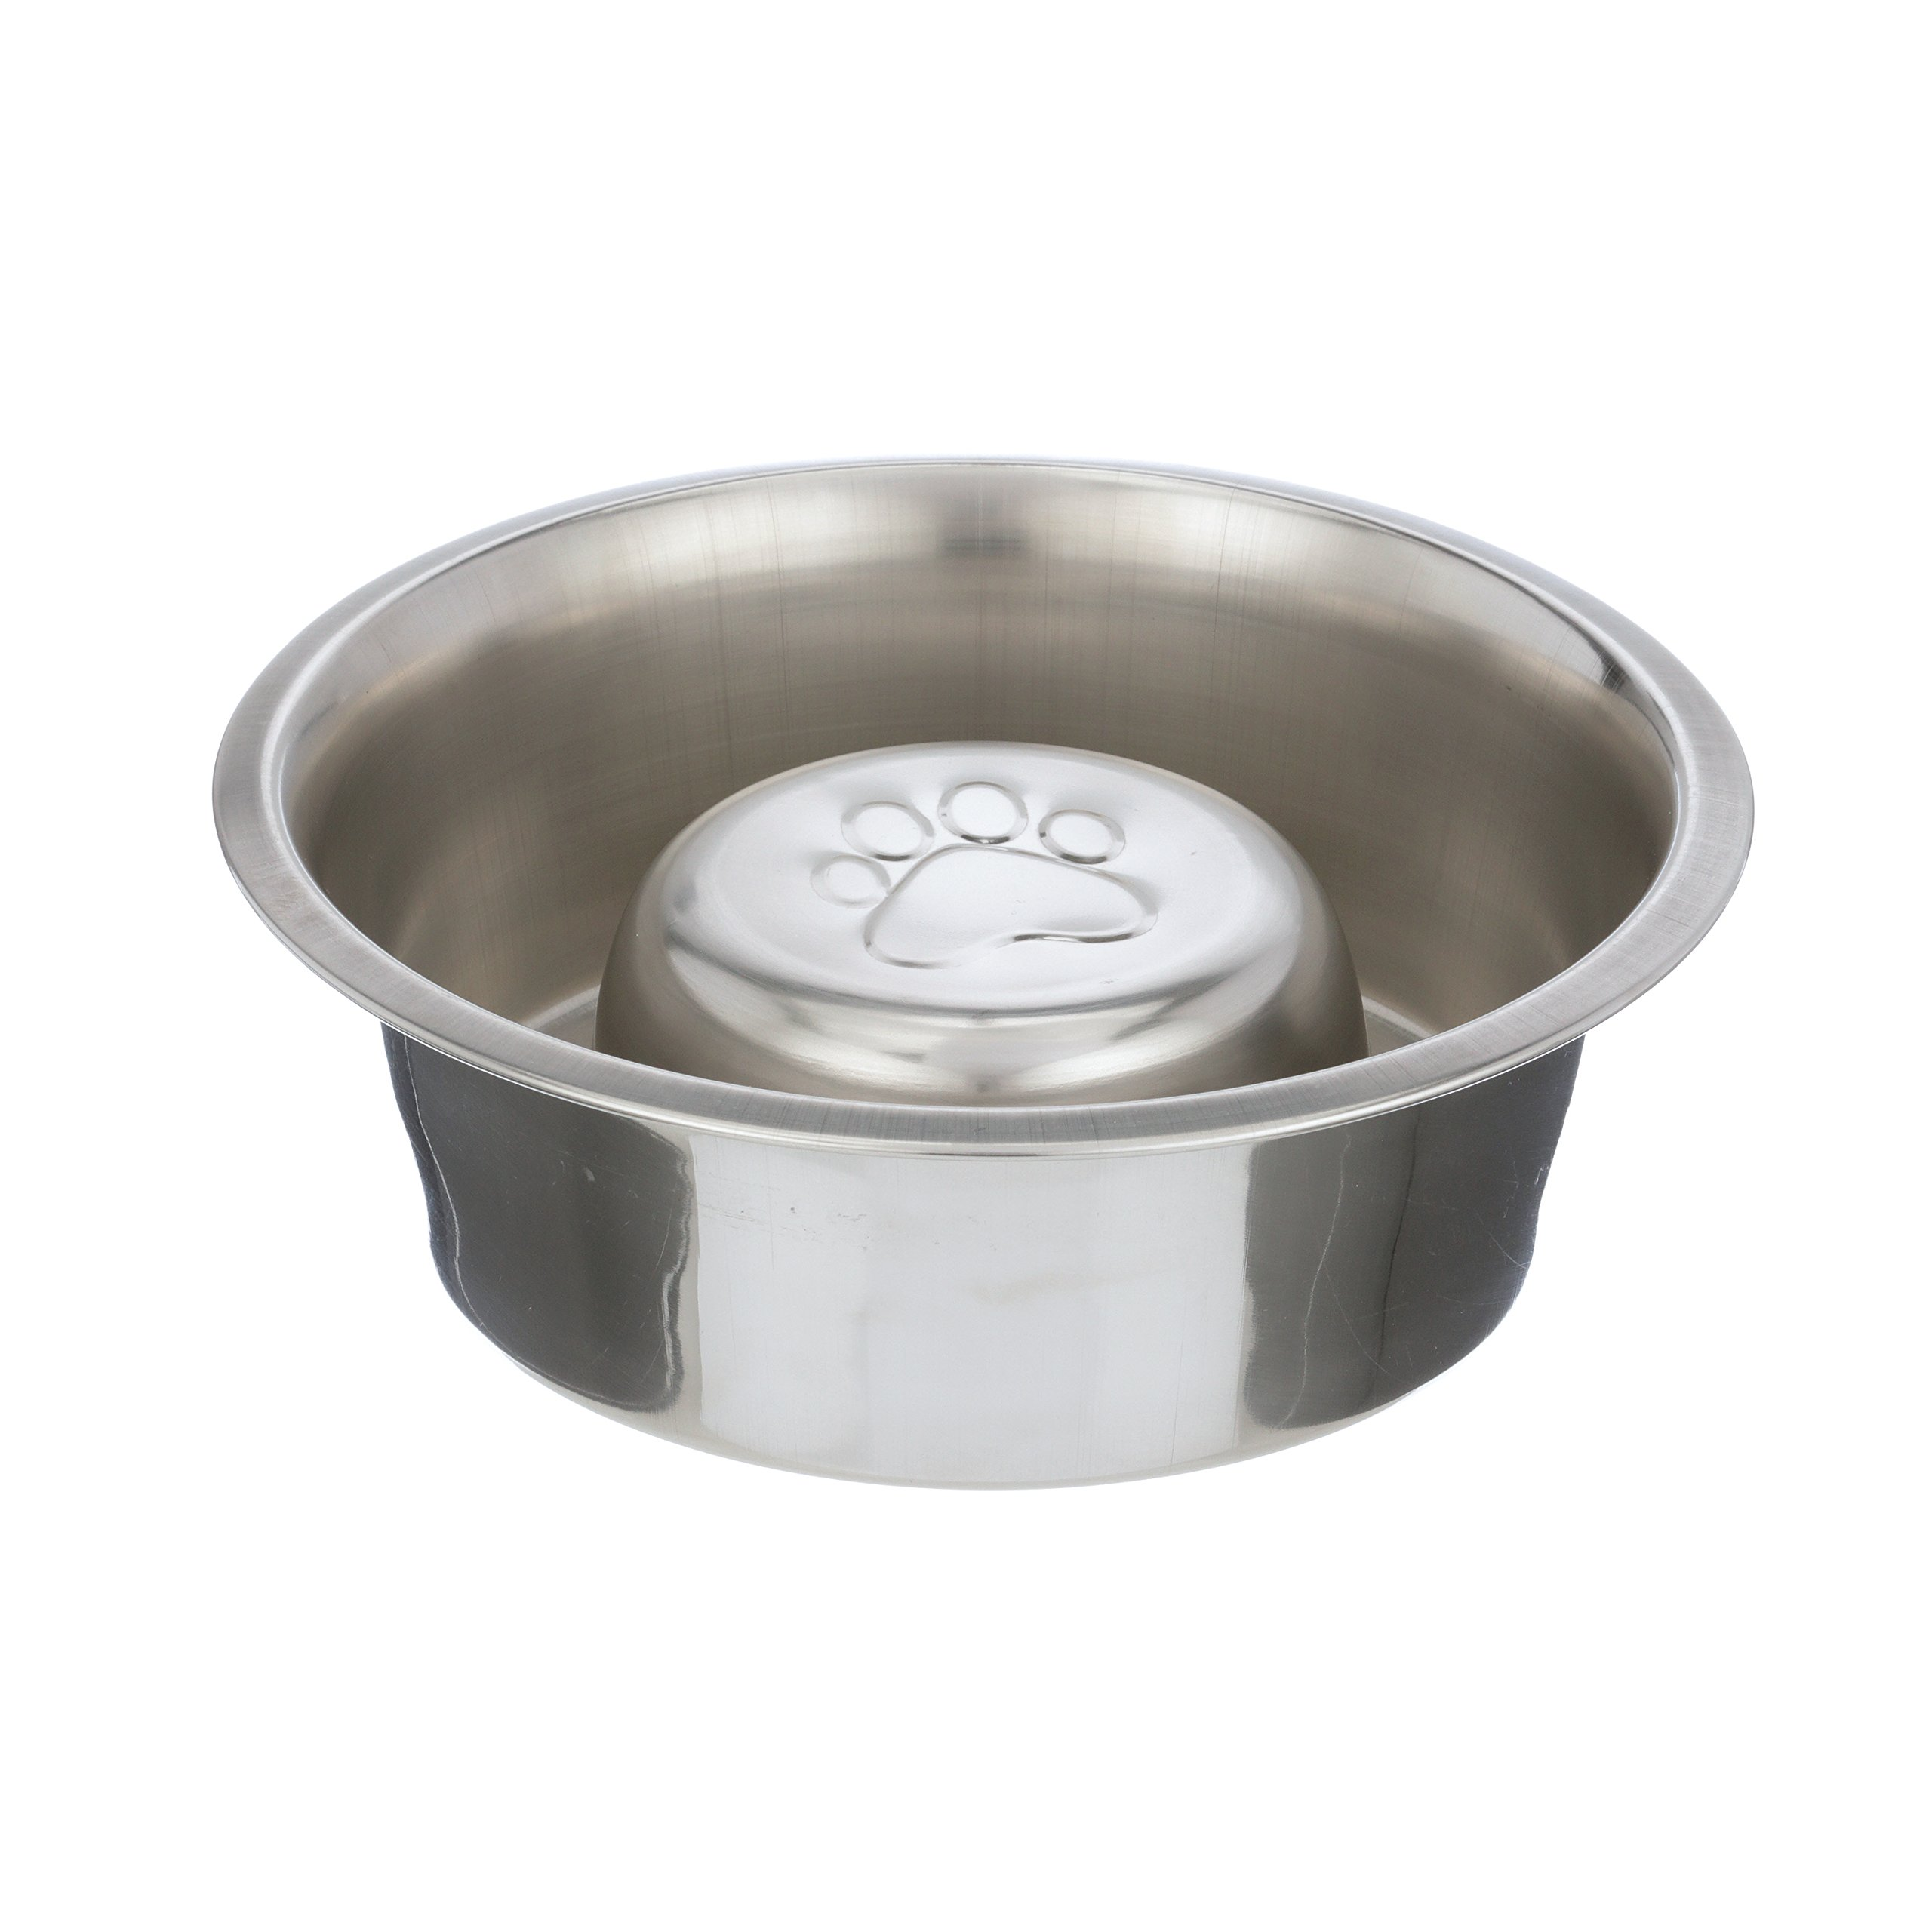 ecofriendly and pleasant pets this feeder for woofs a bowl pace slow dogs slowfeedingbowl at with mealtime